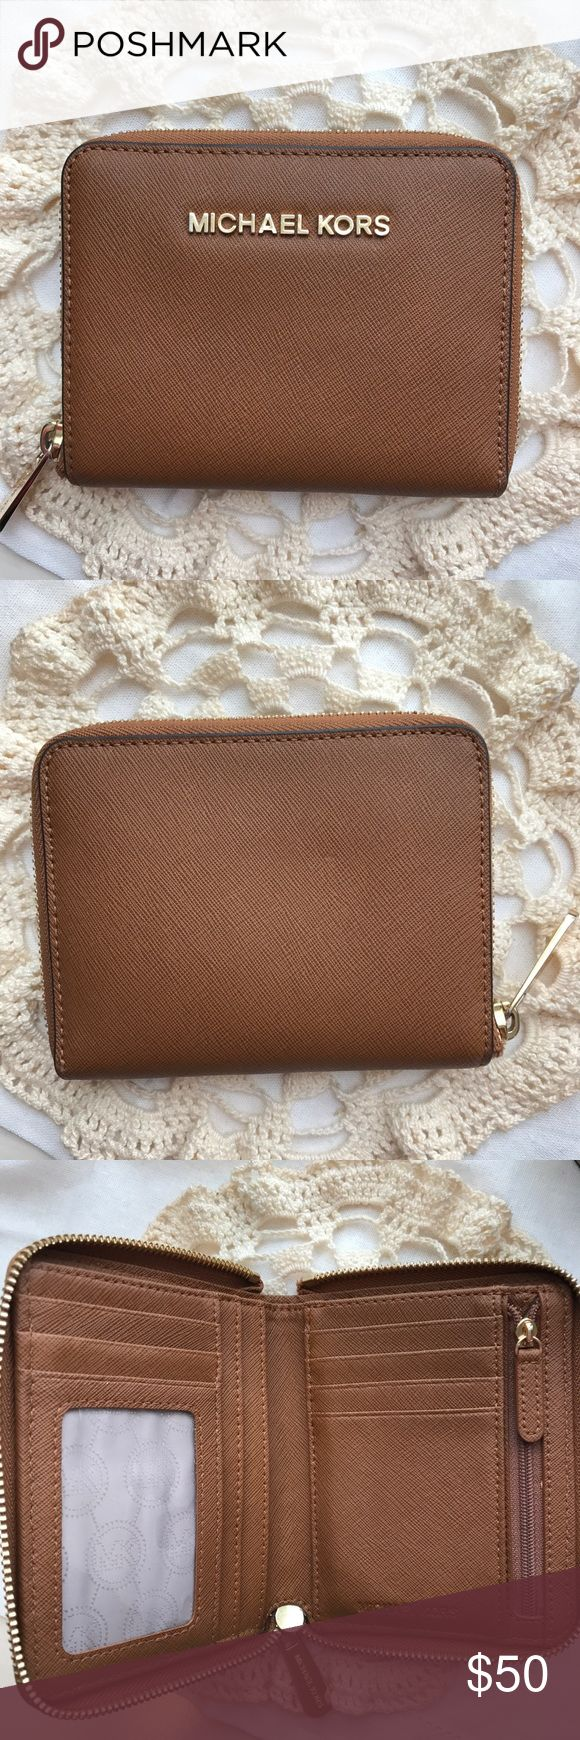 Michael Kors Wallet Michael Kors brown/tan small zip around wallet. In like new condition; only used for a month long trip to Europe. Reasonable offers are always accepted! Michael Kors Bags Wallets